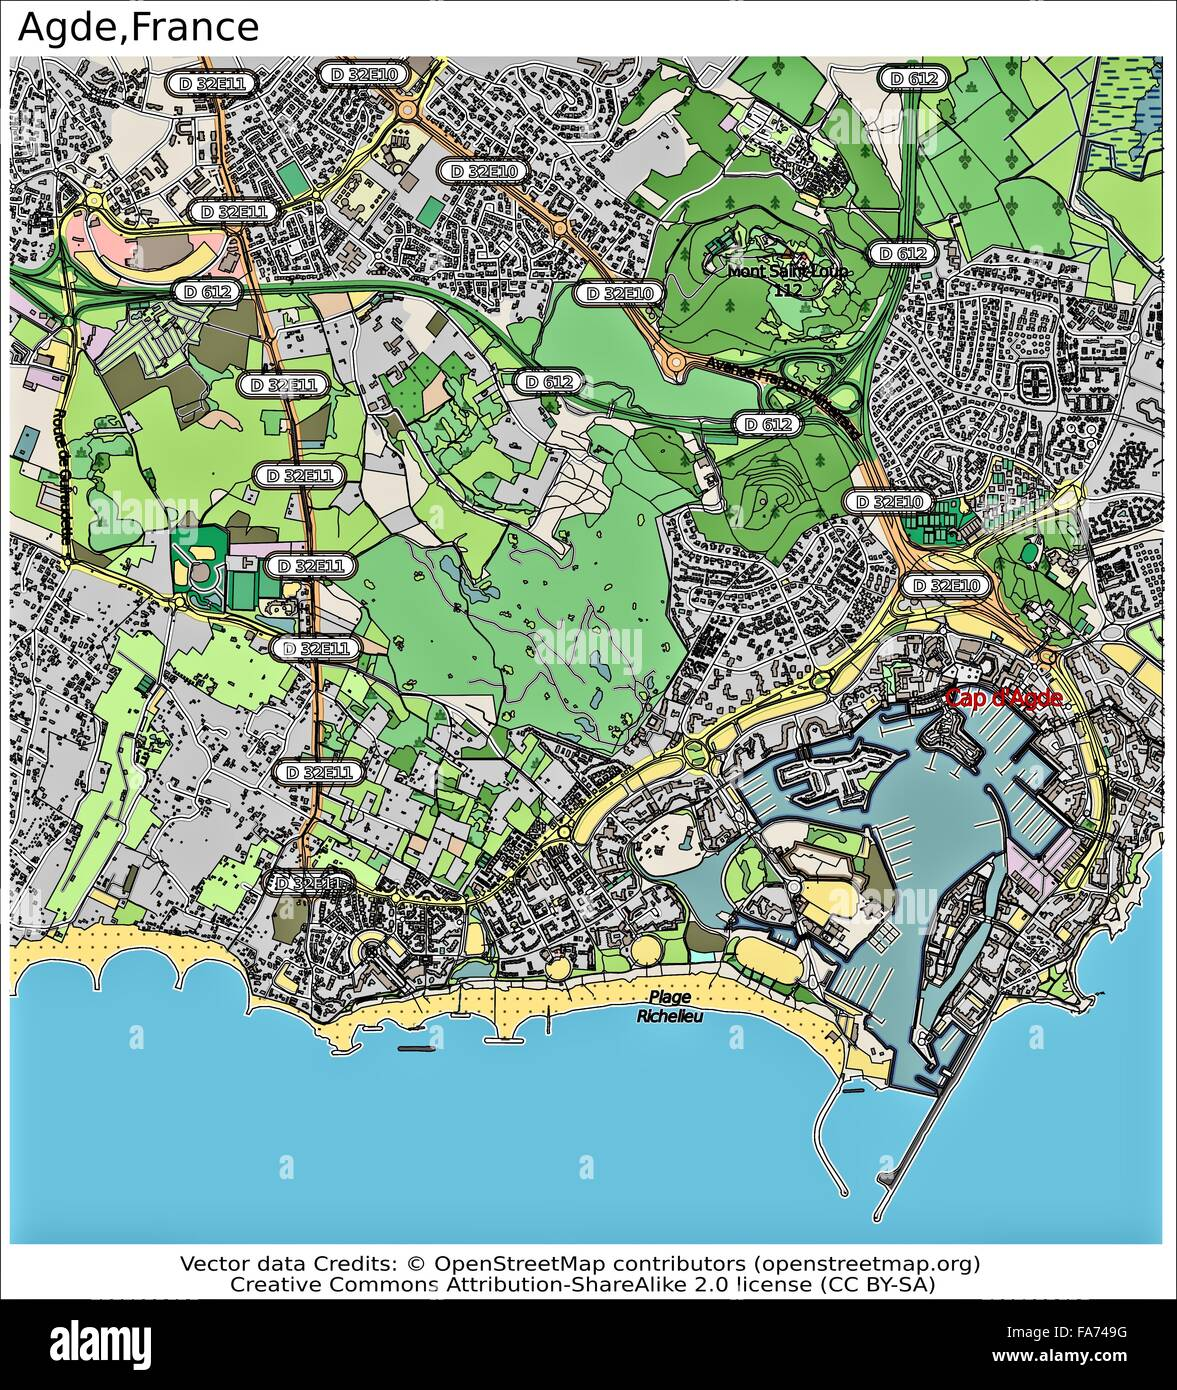 Agde France location map Stock Photo Royalty Free Image 92355468